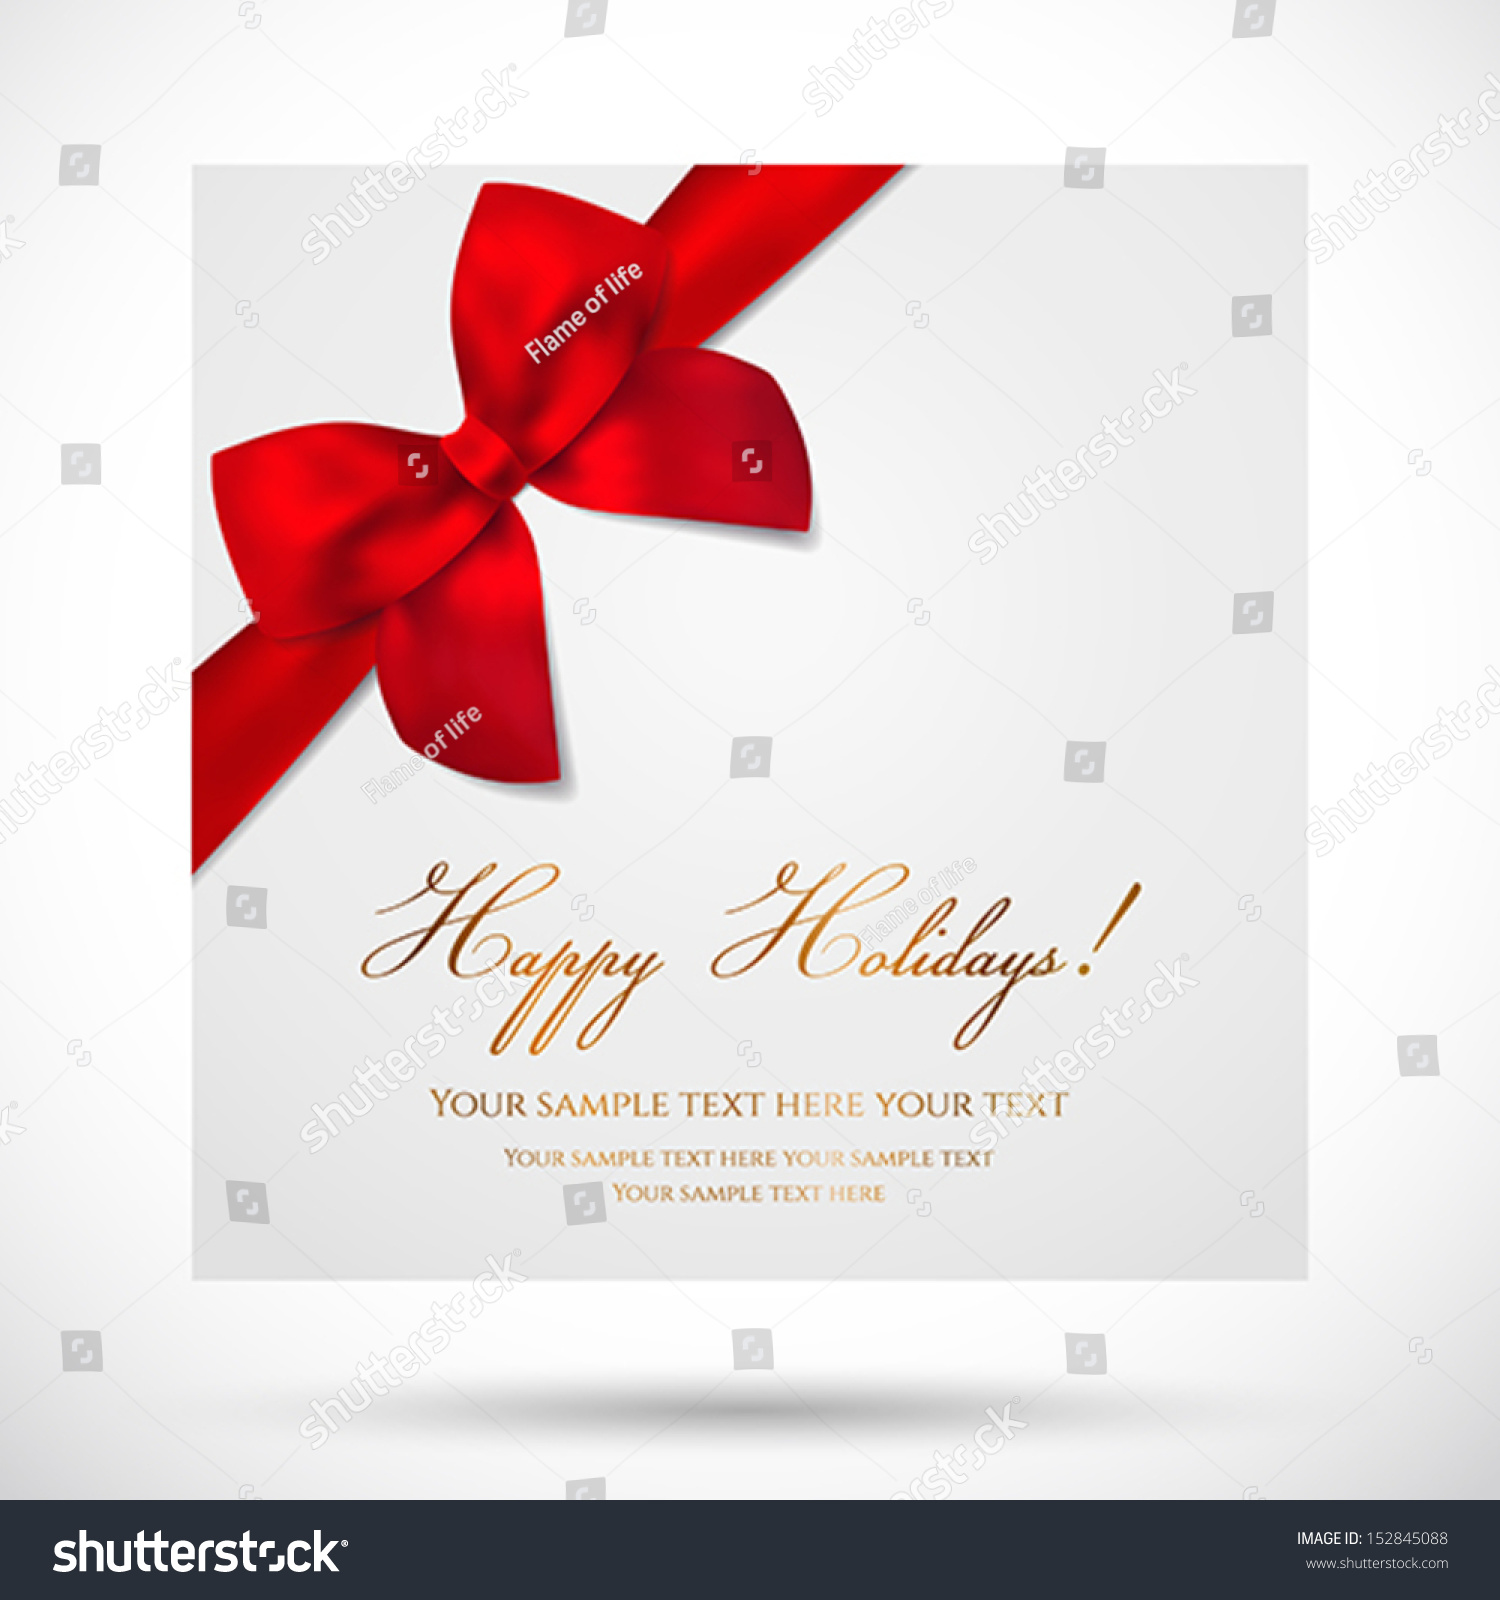 Holiday Card Christmas Card Birthday Card Vector 152845088 – Holiday Card Template